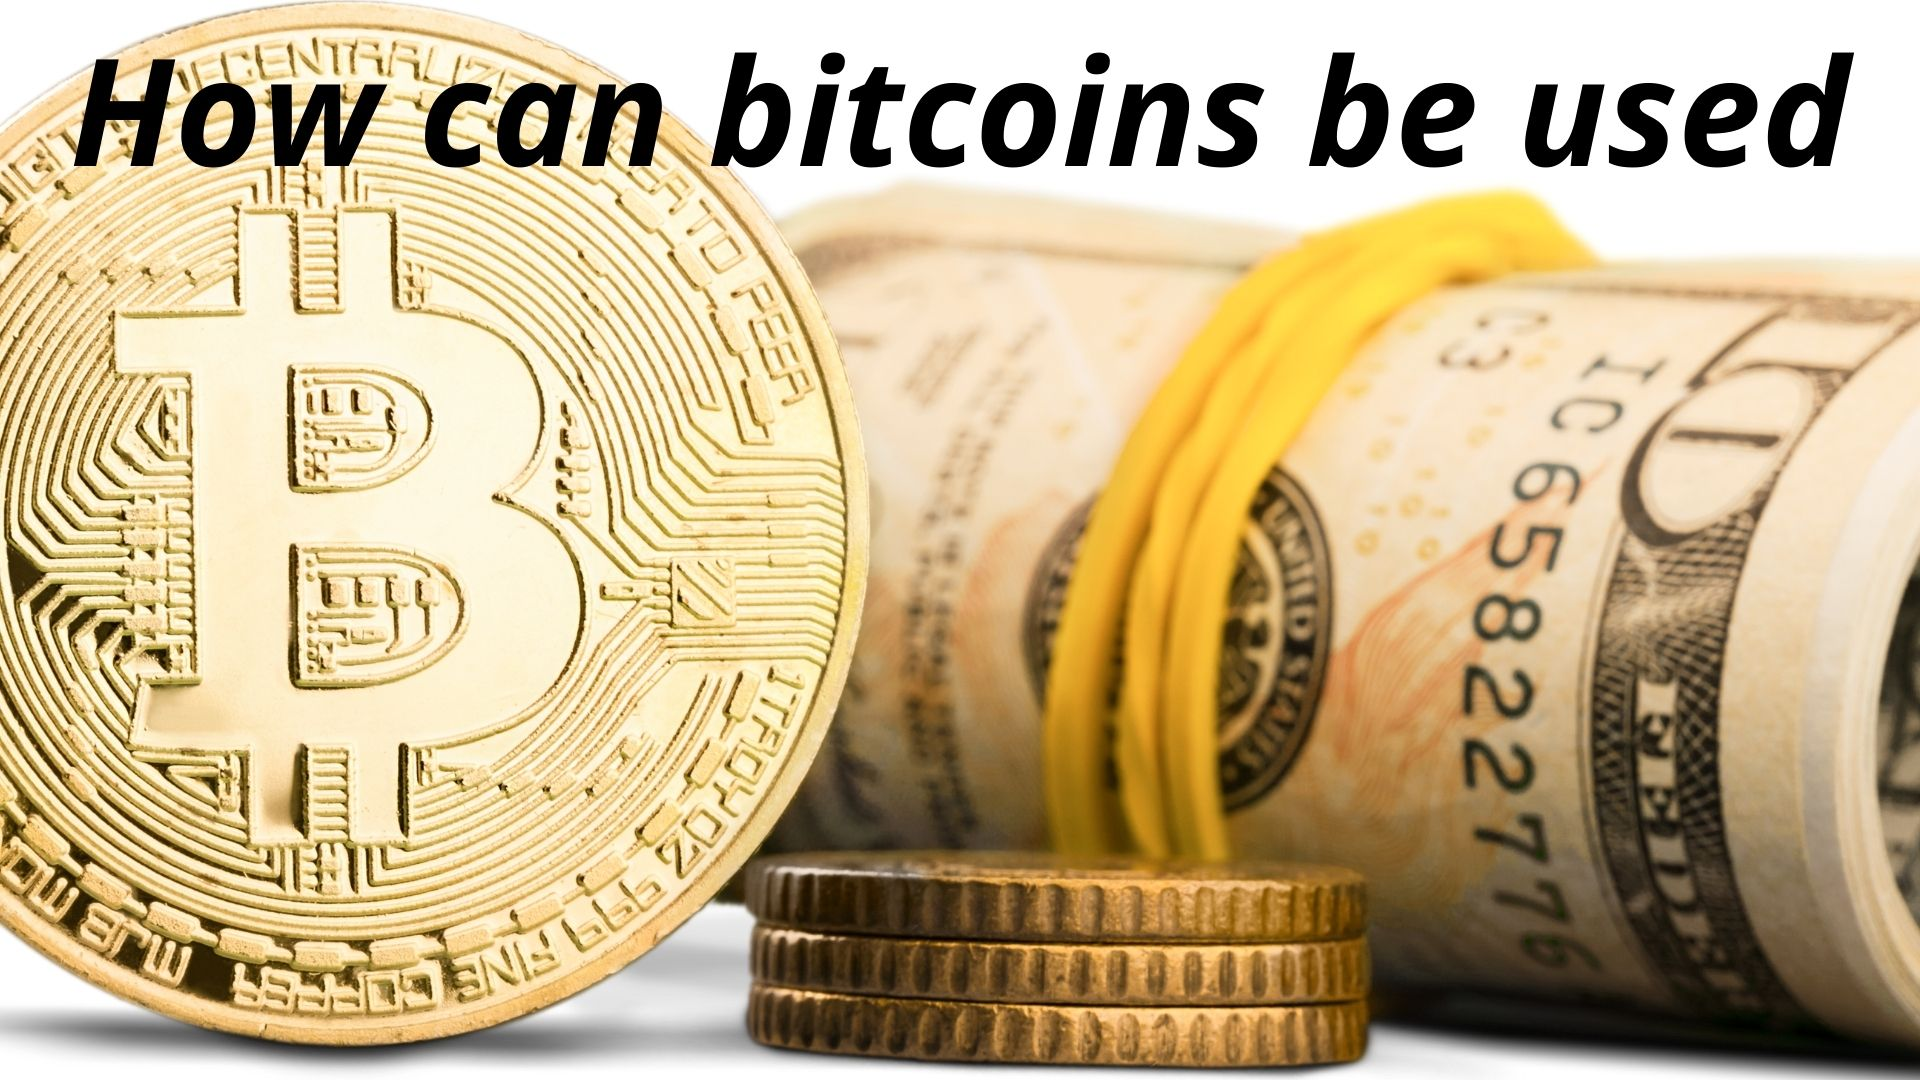 How can bitcoins be used